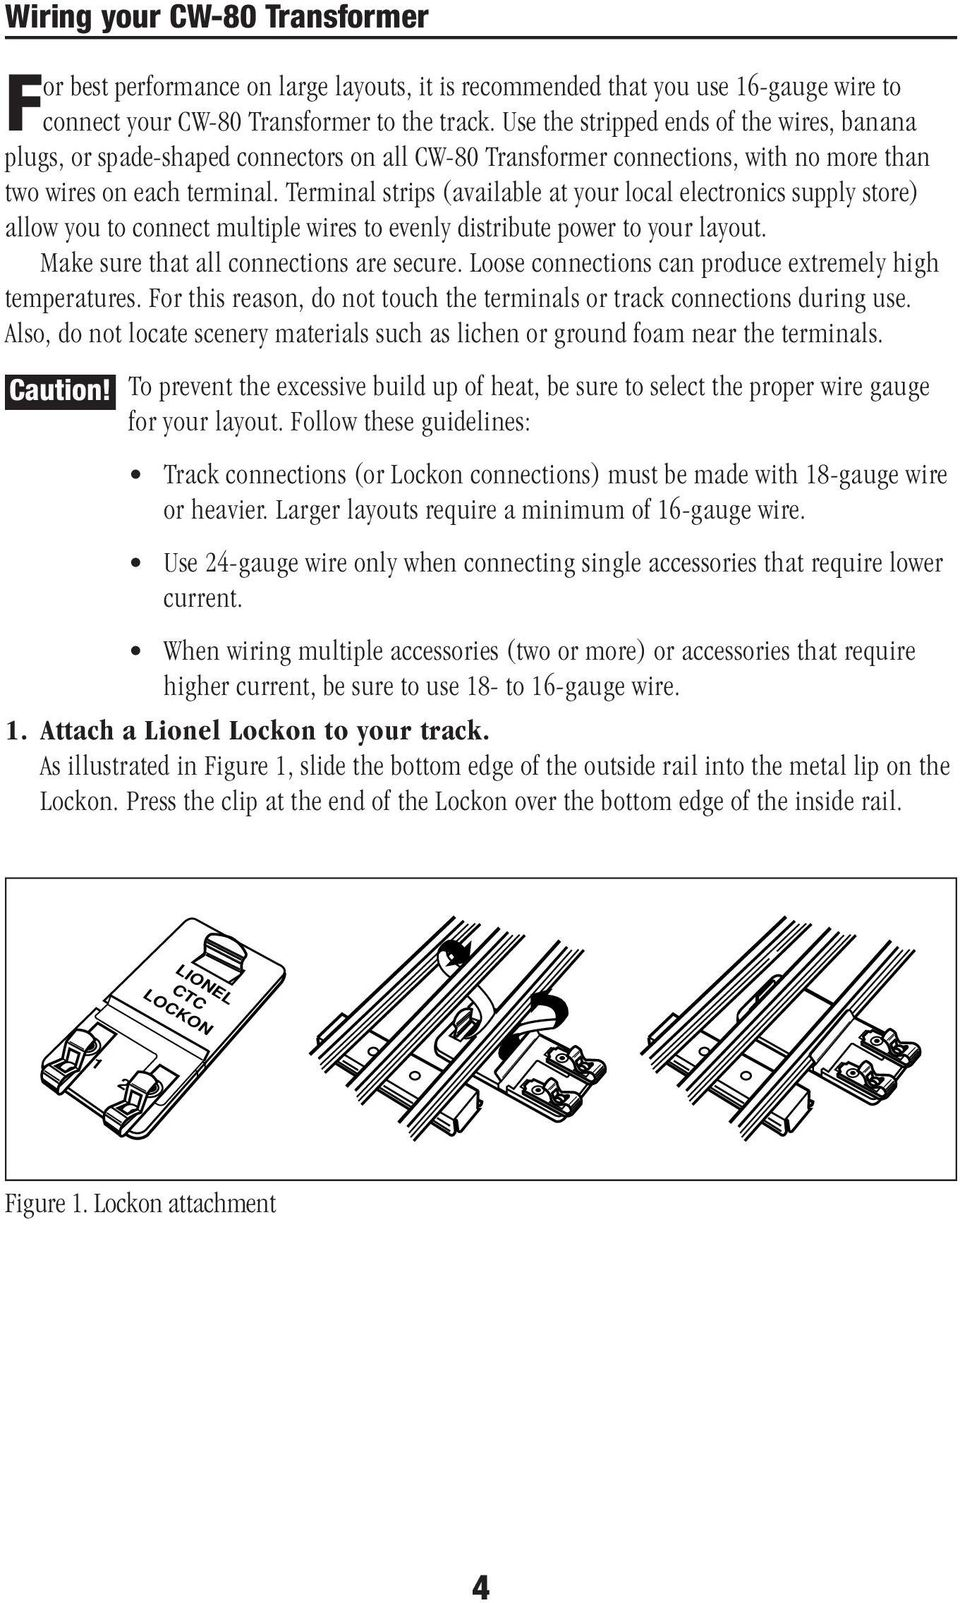 Lionel Accessories Wiring Diagrams - Wiring Diagrams List on